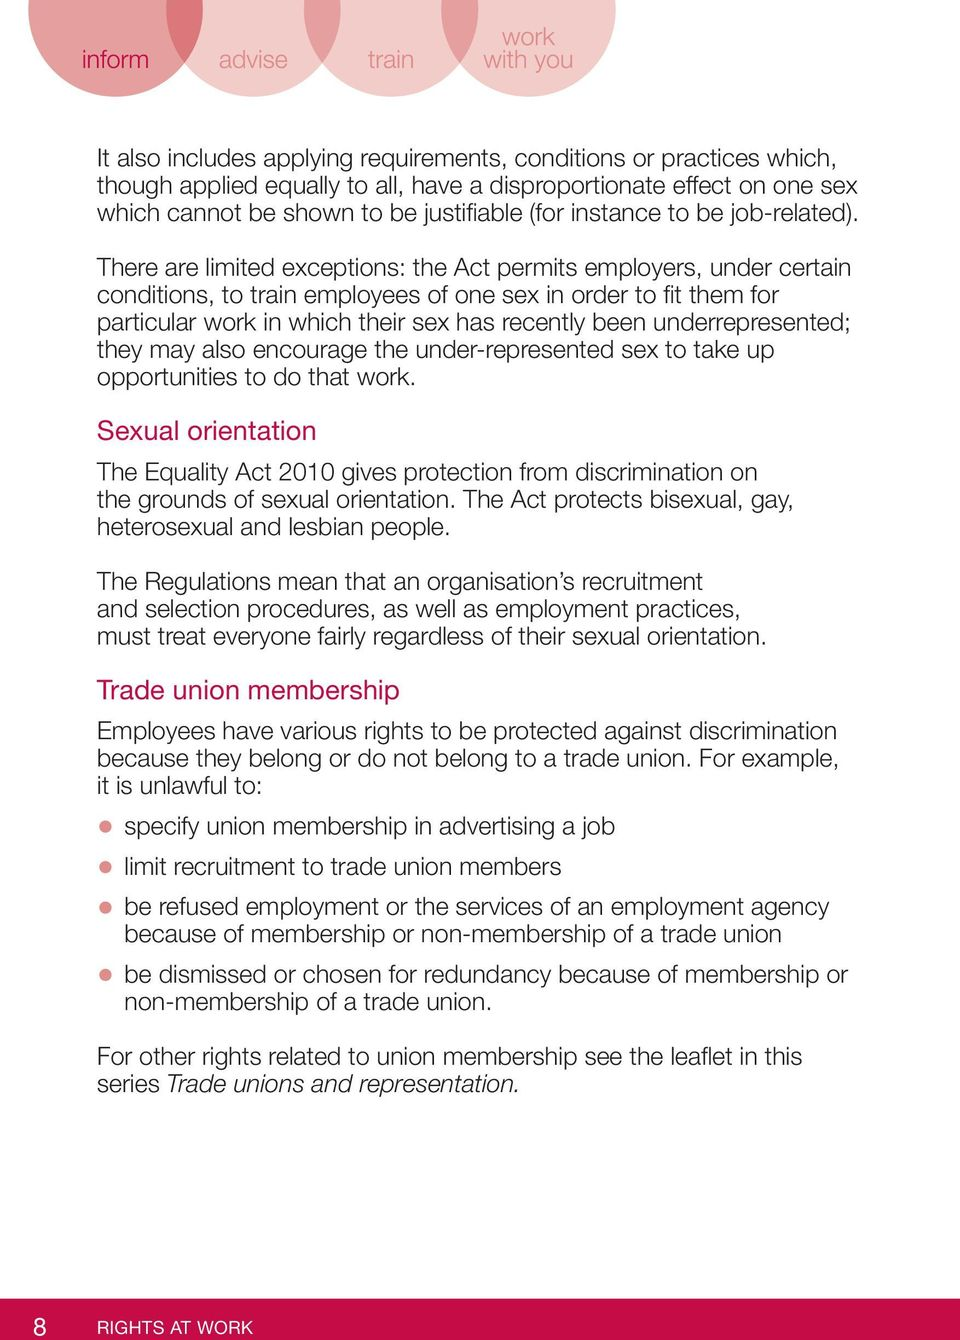 There are limited exceptions: the Act permits employers, under certain conditions, to train employees of one sex in order to fit them for particular work in which their sex has recently been